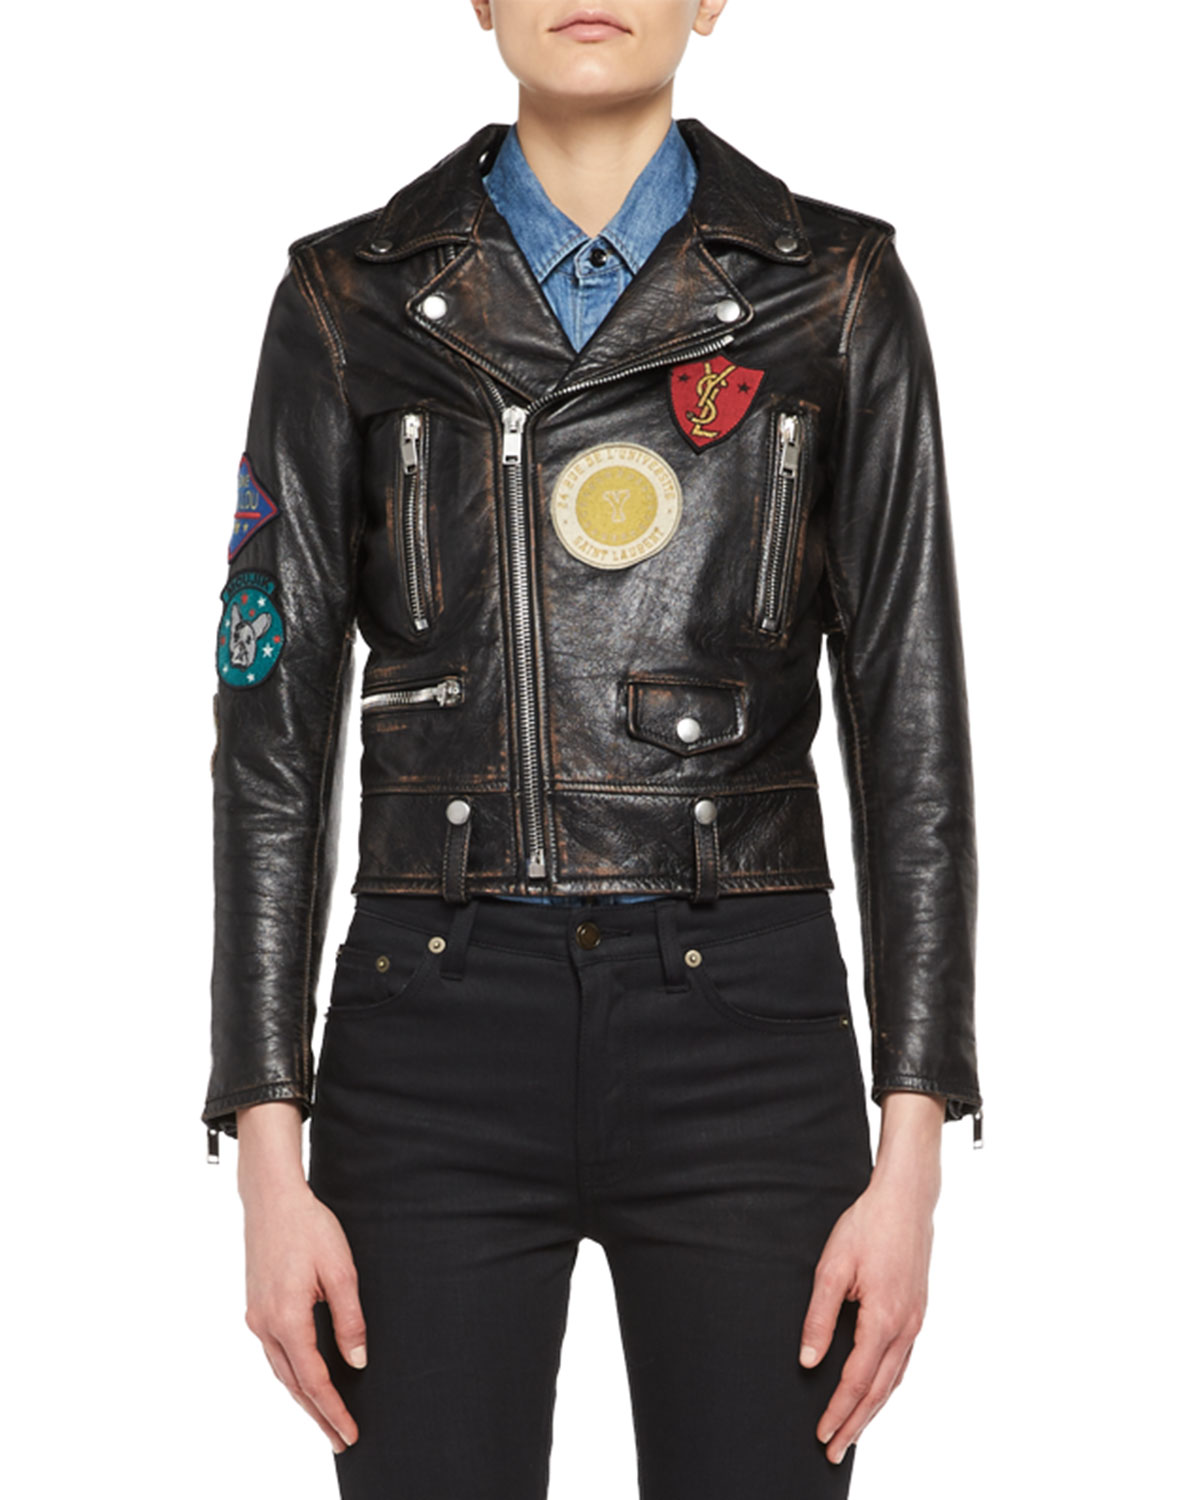 Saint Laurent Leather Moto Jacket With Patches Neiman Marcus